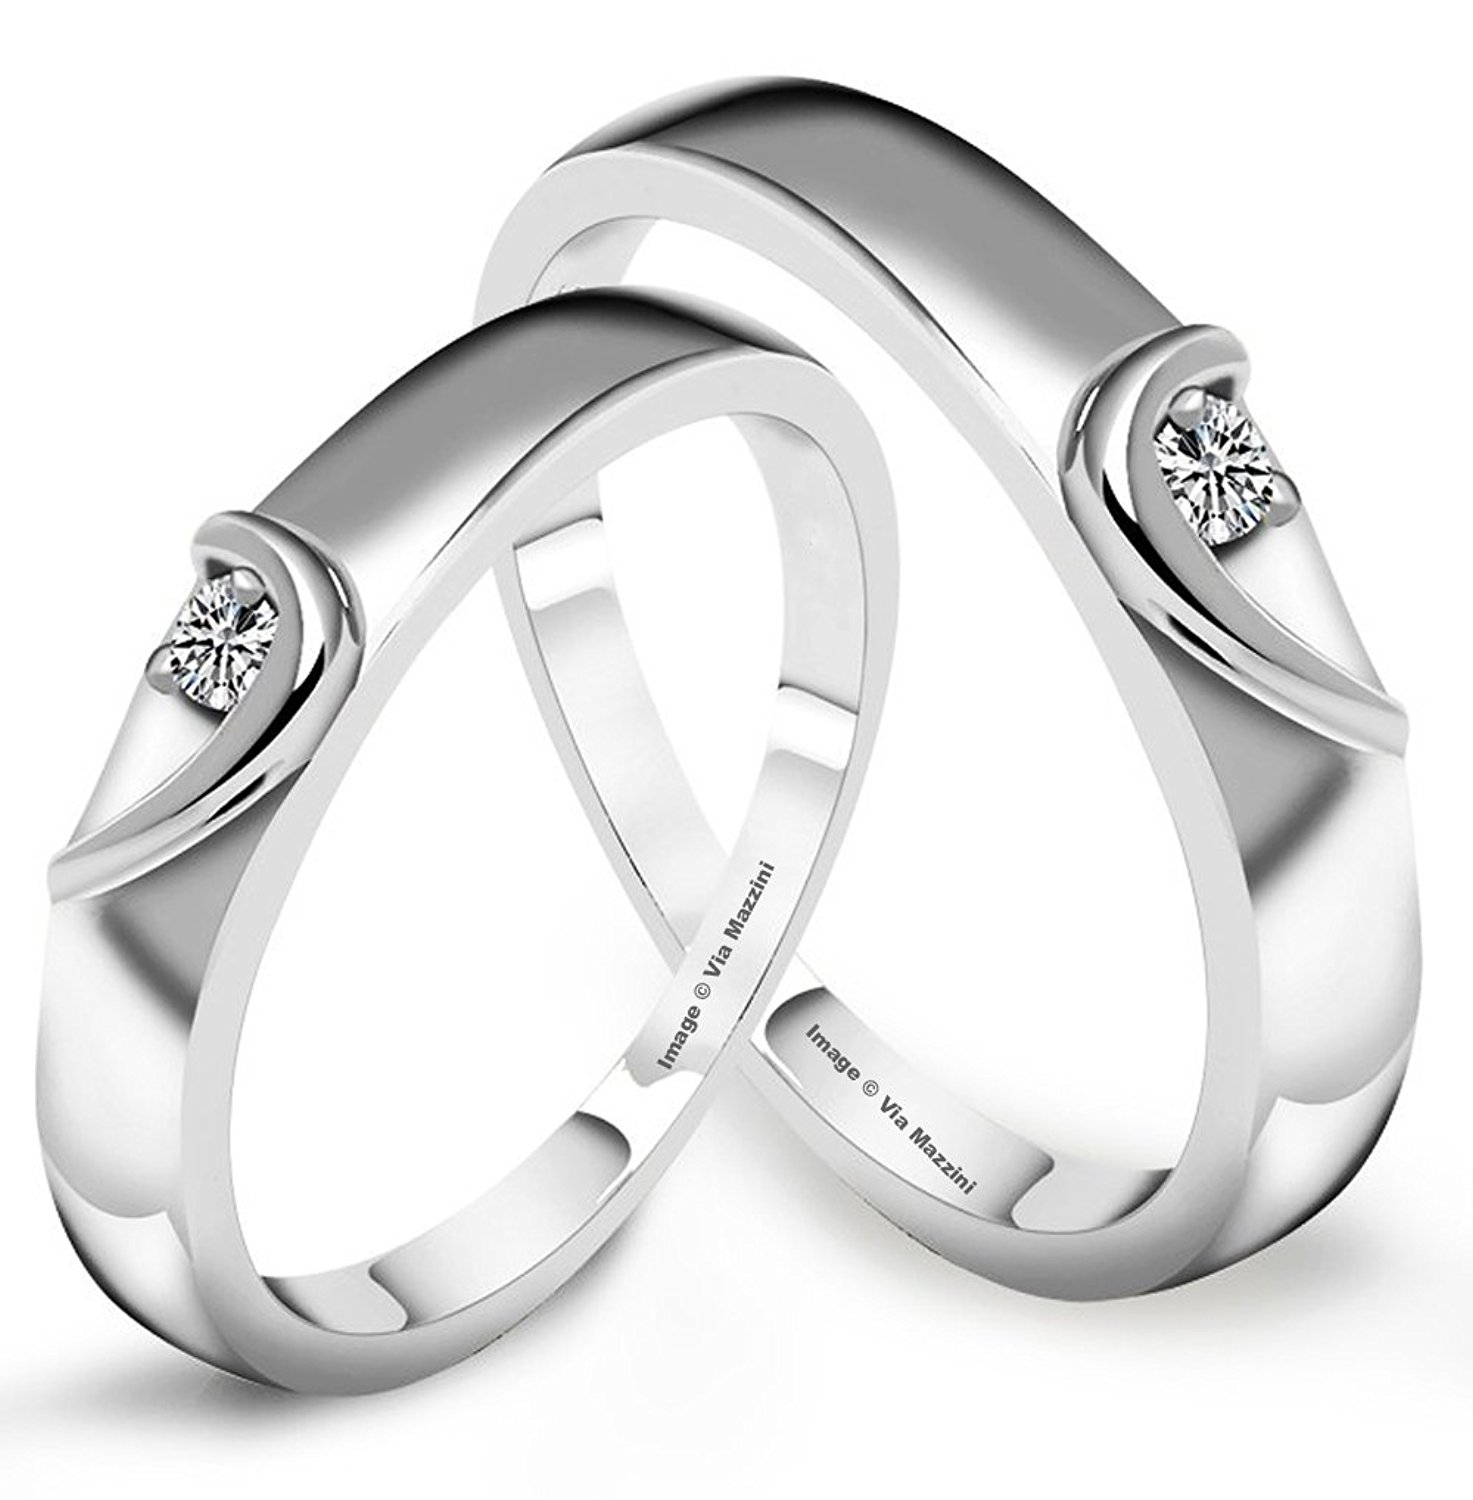 rings for men via mazzini platinum plated stainless steel love birds crystal couple rings  for men and bjmxzuk